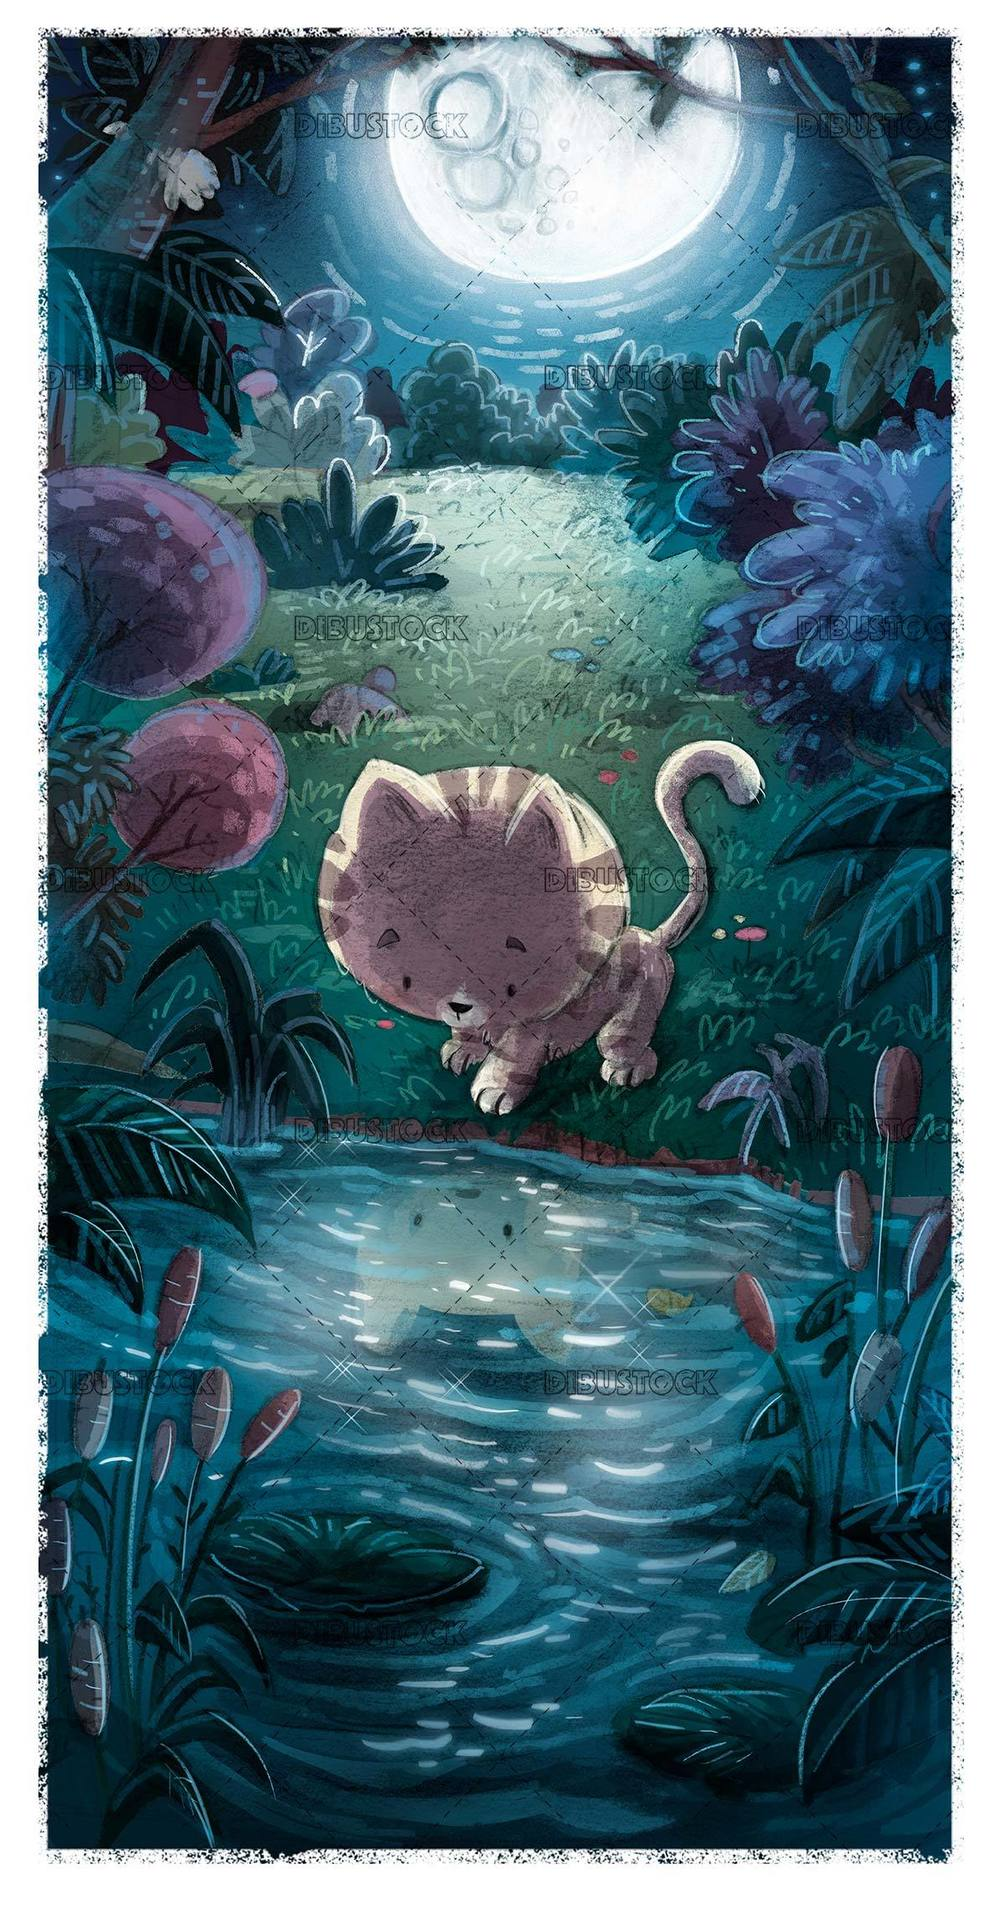 small cat looking in the water reflection